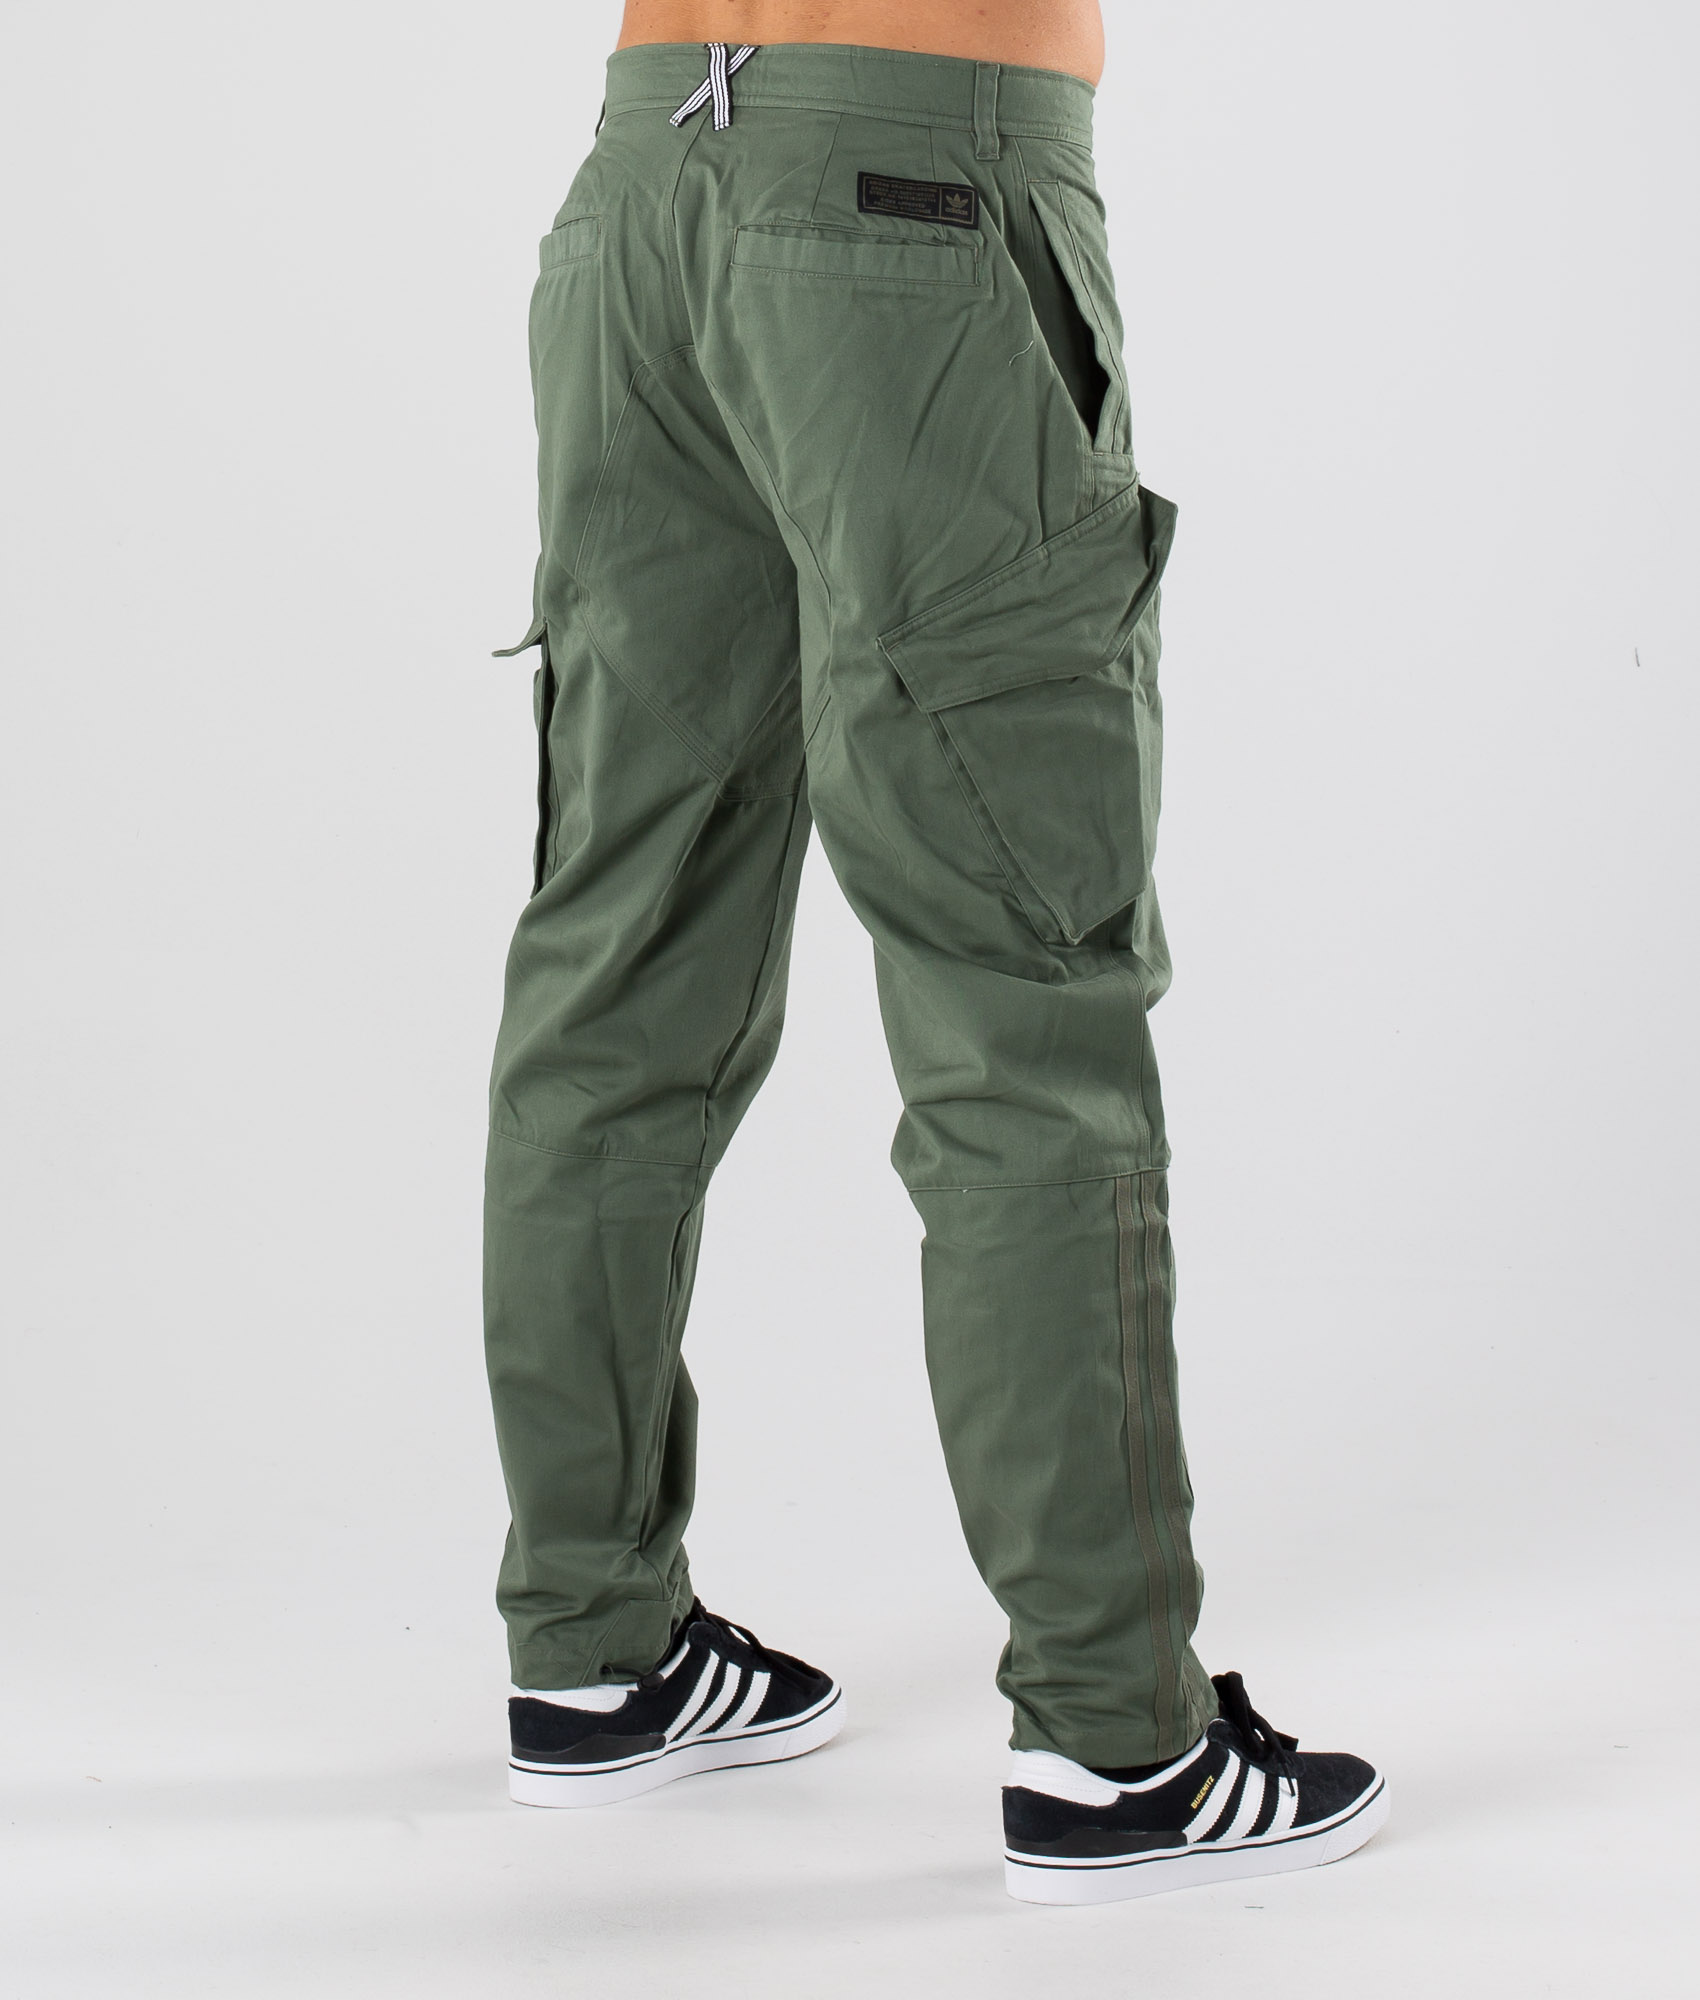 Adidas Skateboarding Cargopants Hosen Base Green